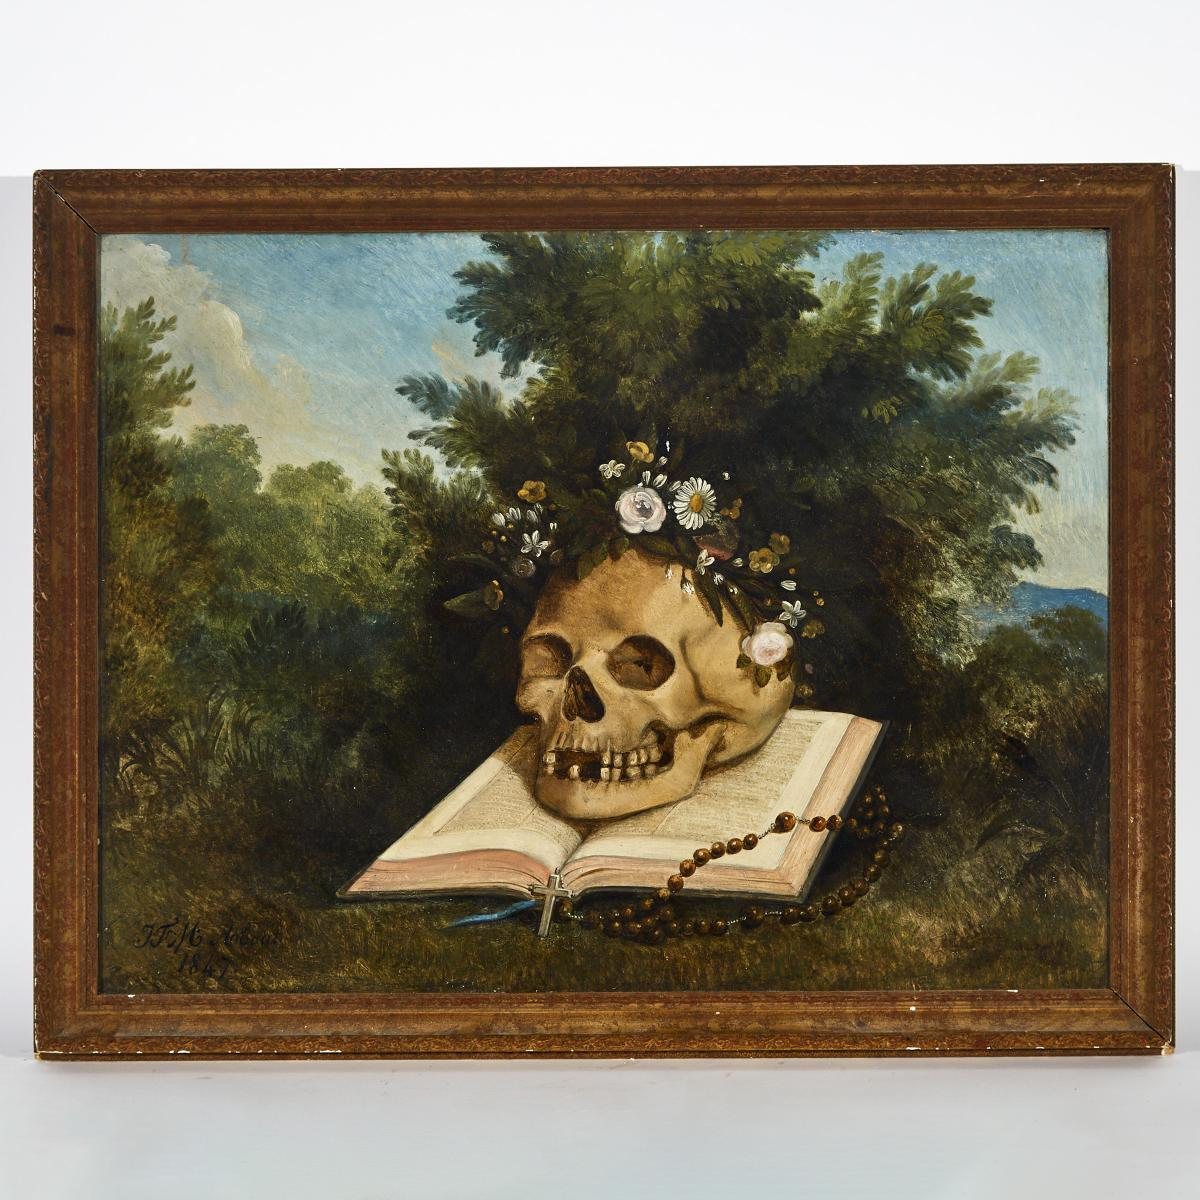 Victorian Memento Mori School Painting, 1847, SKULL ON BIBLE WITH ROSARY, 22.5 x 28.25 in — 57.2 x 7